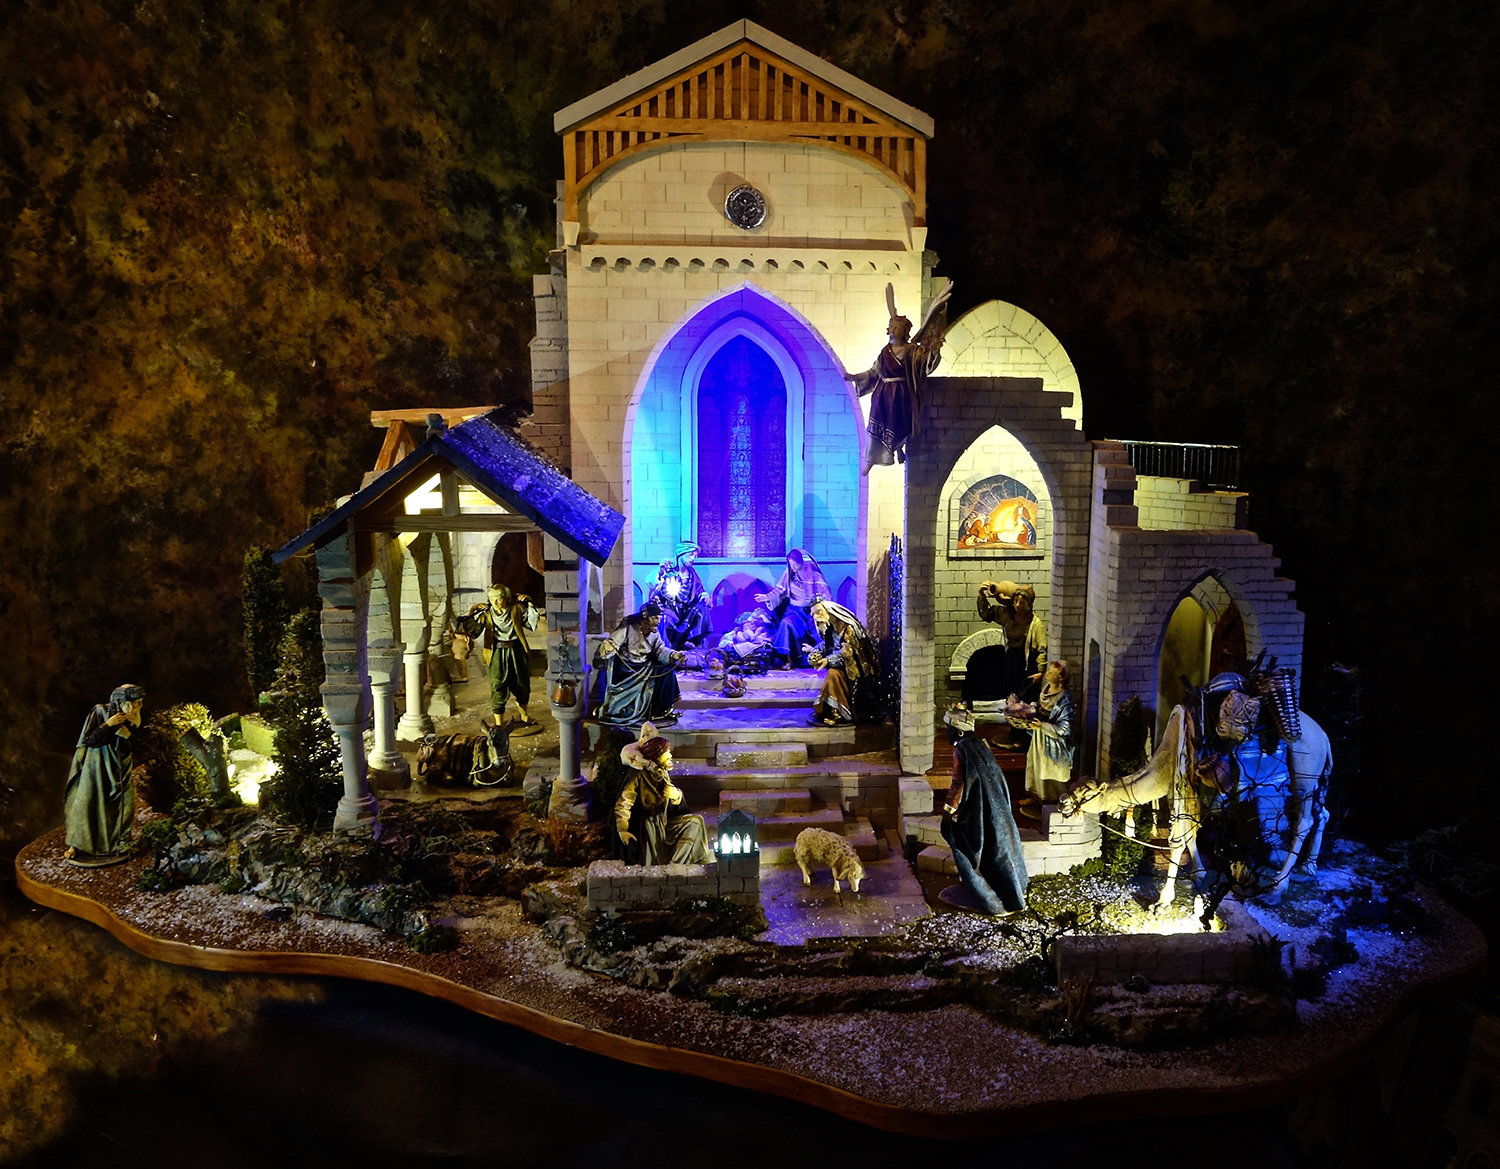 """Figure 22:The """"Christmas in the Castle"""" tour features a unique creation by  Navidad Nativities  of Bucks County, Pennsylvania. This custom Nativity setting was inspired by the art and architecture of Bryn Athyn Cathedral and Glencairn. The human and animal figures were hand carved in wood and dressed in starched fabric by Original Heide, a family business in the Italian Alps."""